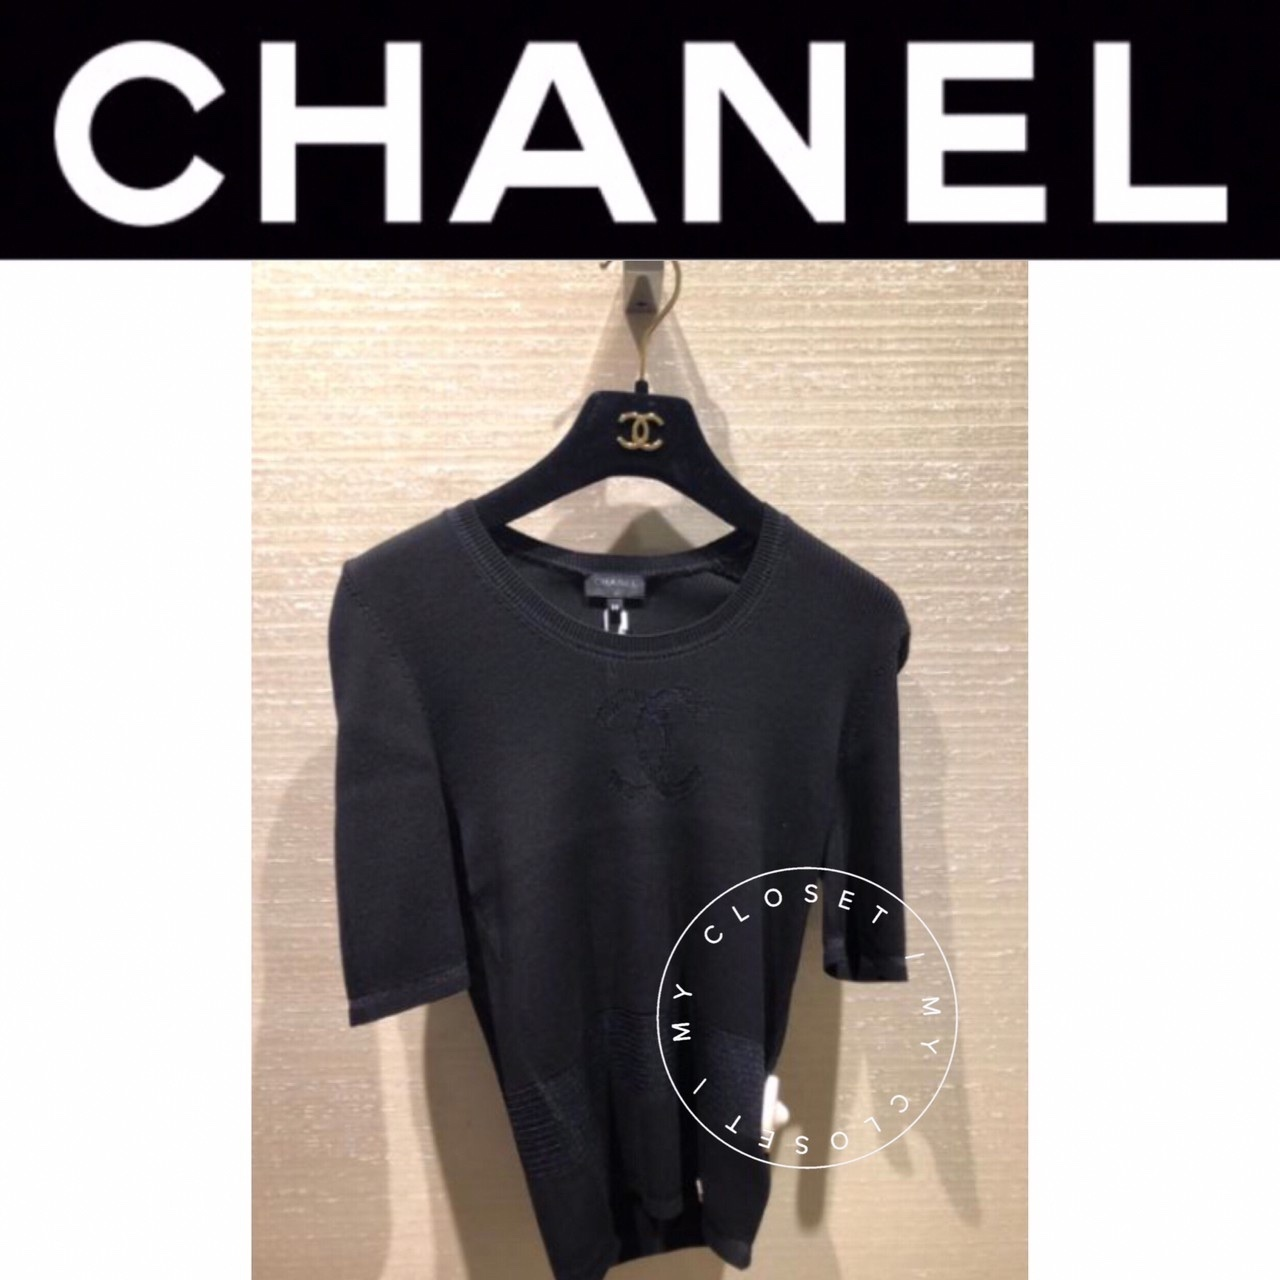 CHANEL トップス シャツ カットソー 半袖  新作 限定 直営 黒 CC (CHANEL/Tシャツ・カットソー) 63527909